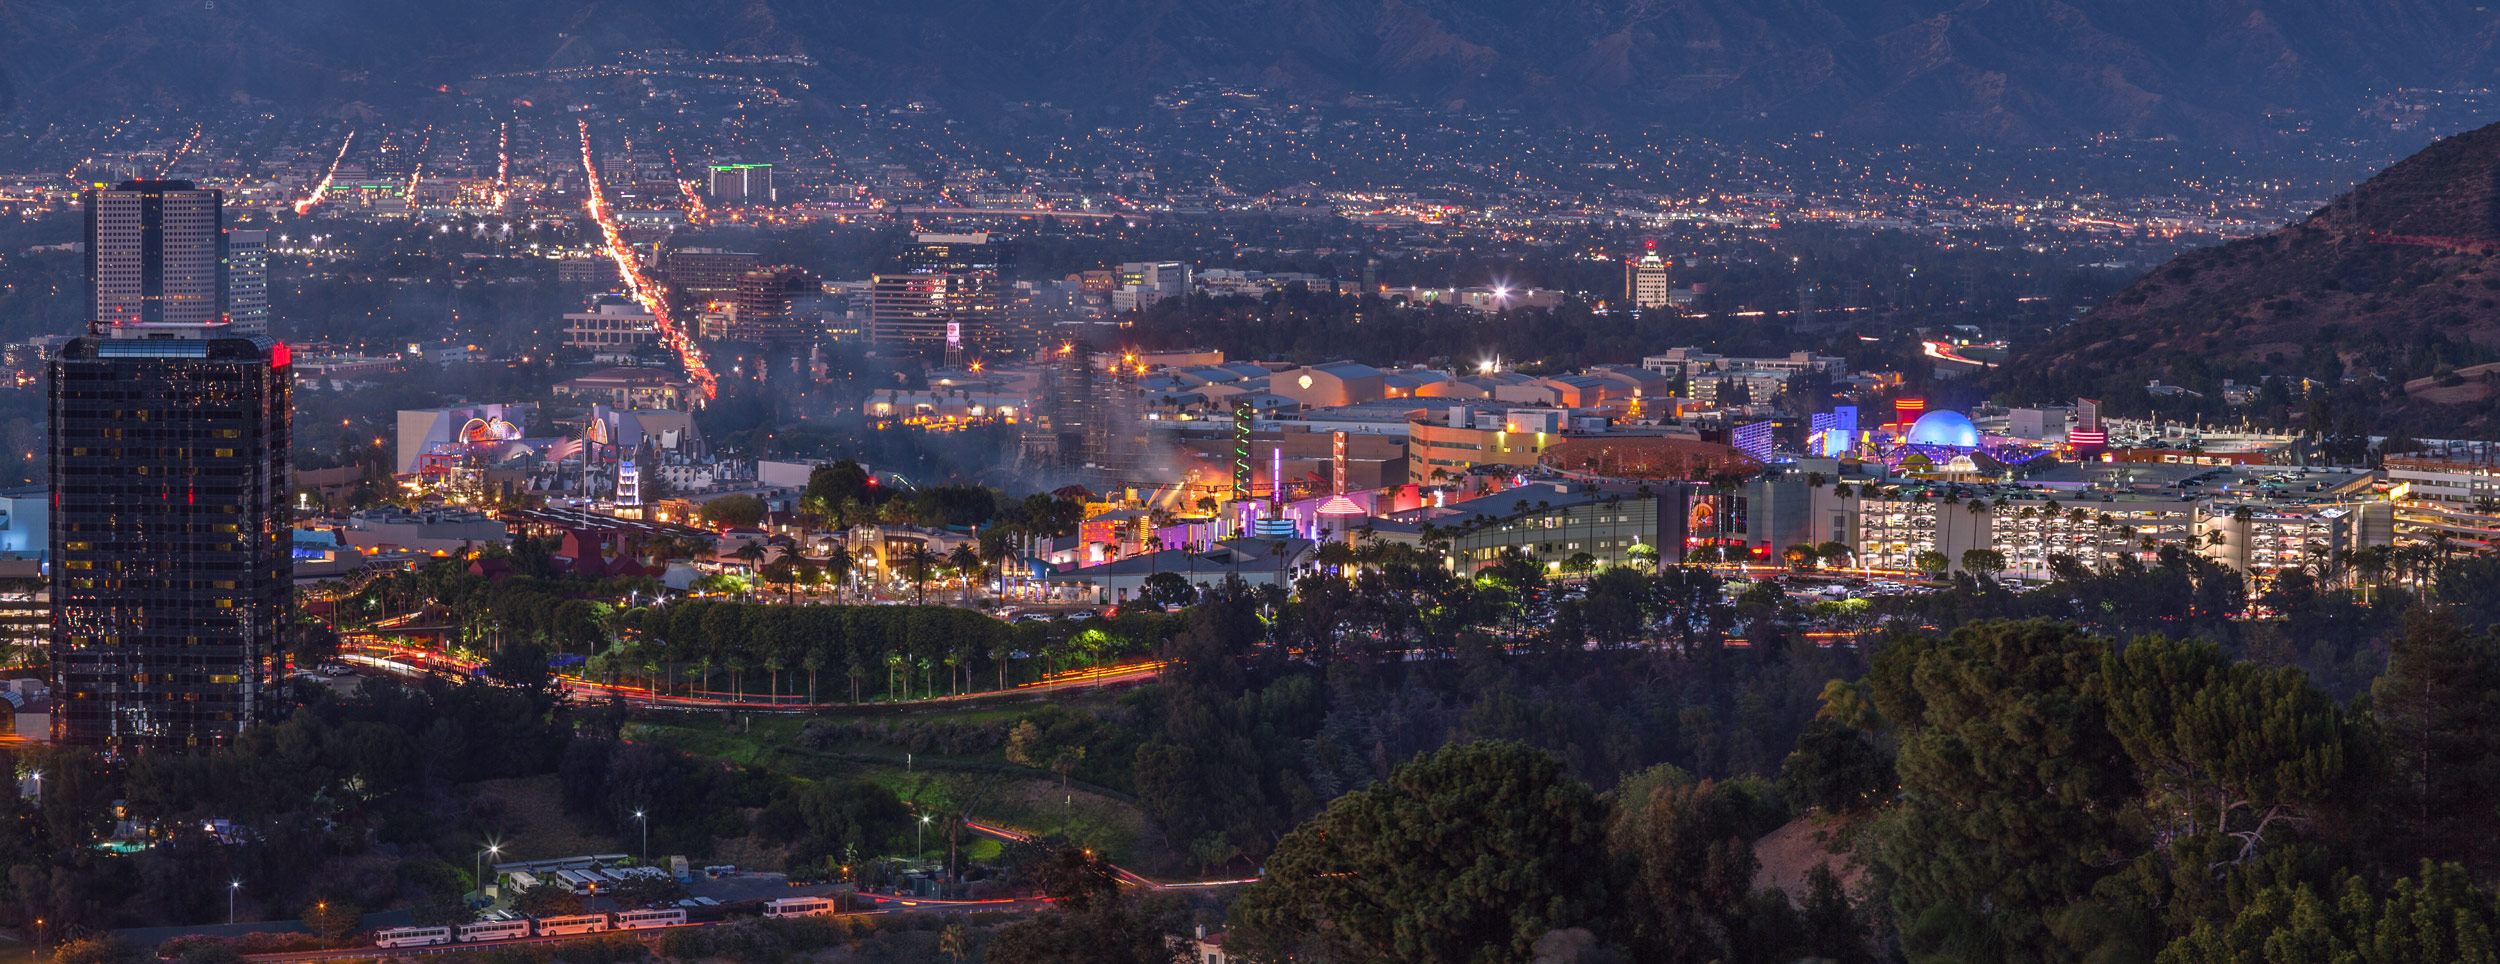 Panoramic View of Universal Studios, Los Angeles